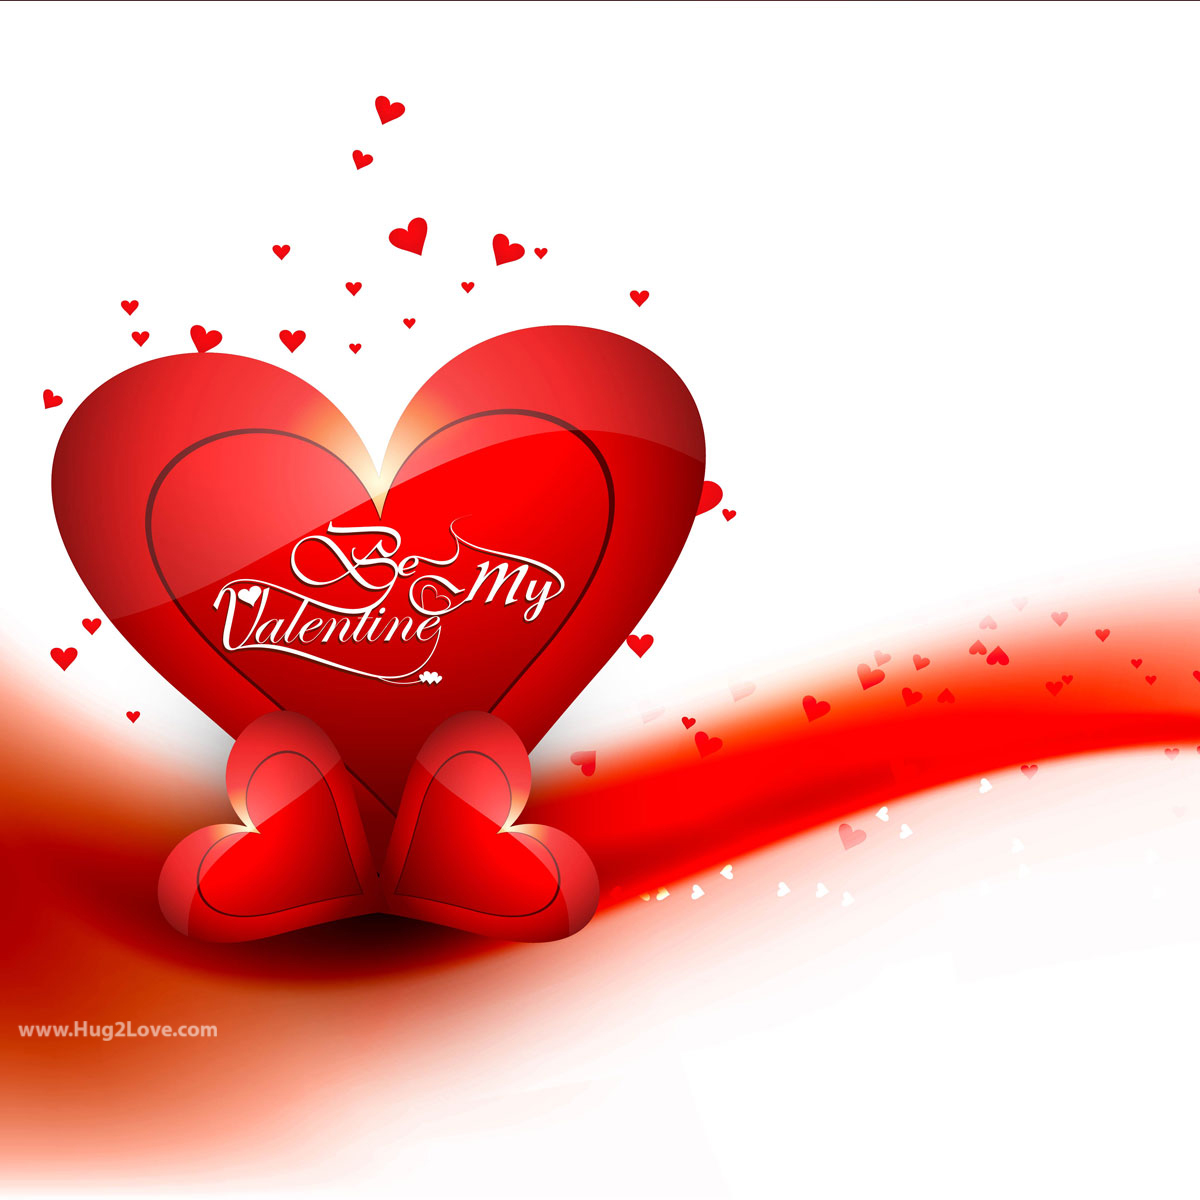 100 Happy Valentines Day Images Wallpapers 2020 1200x1200